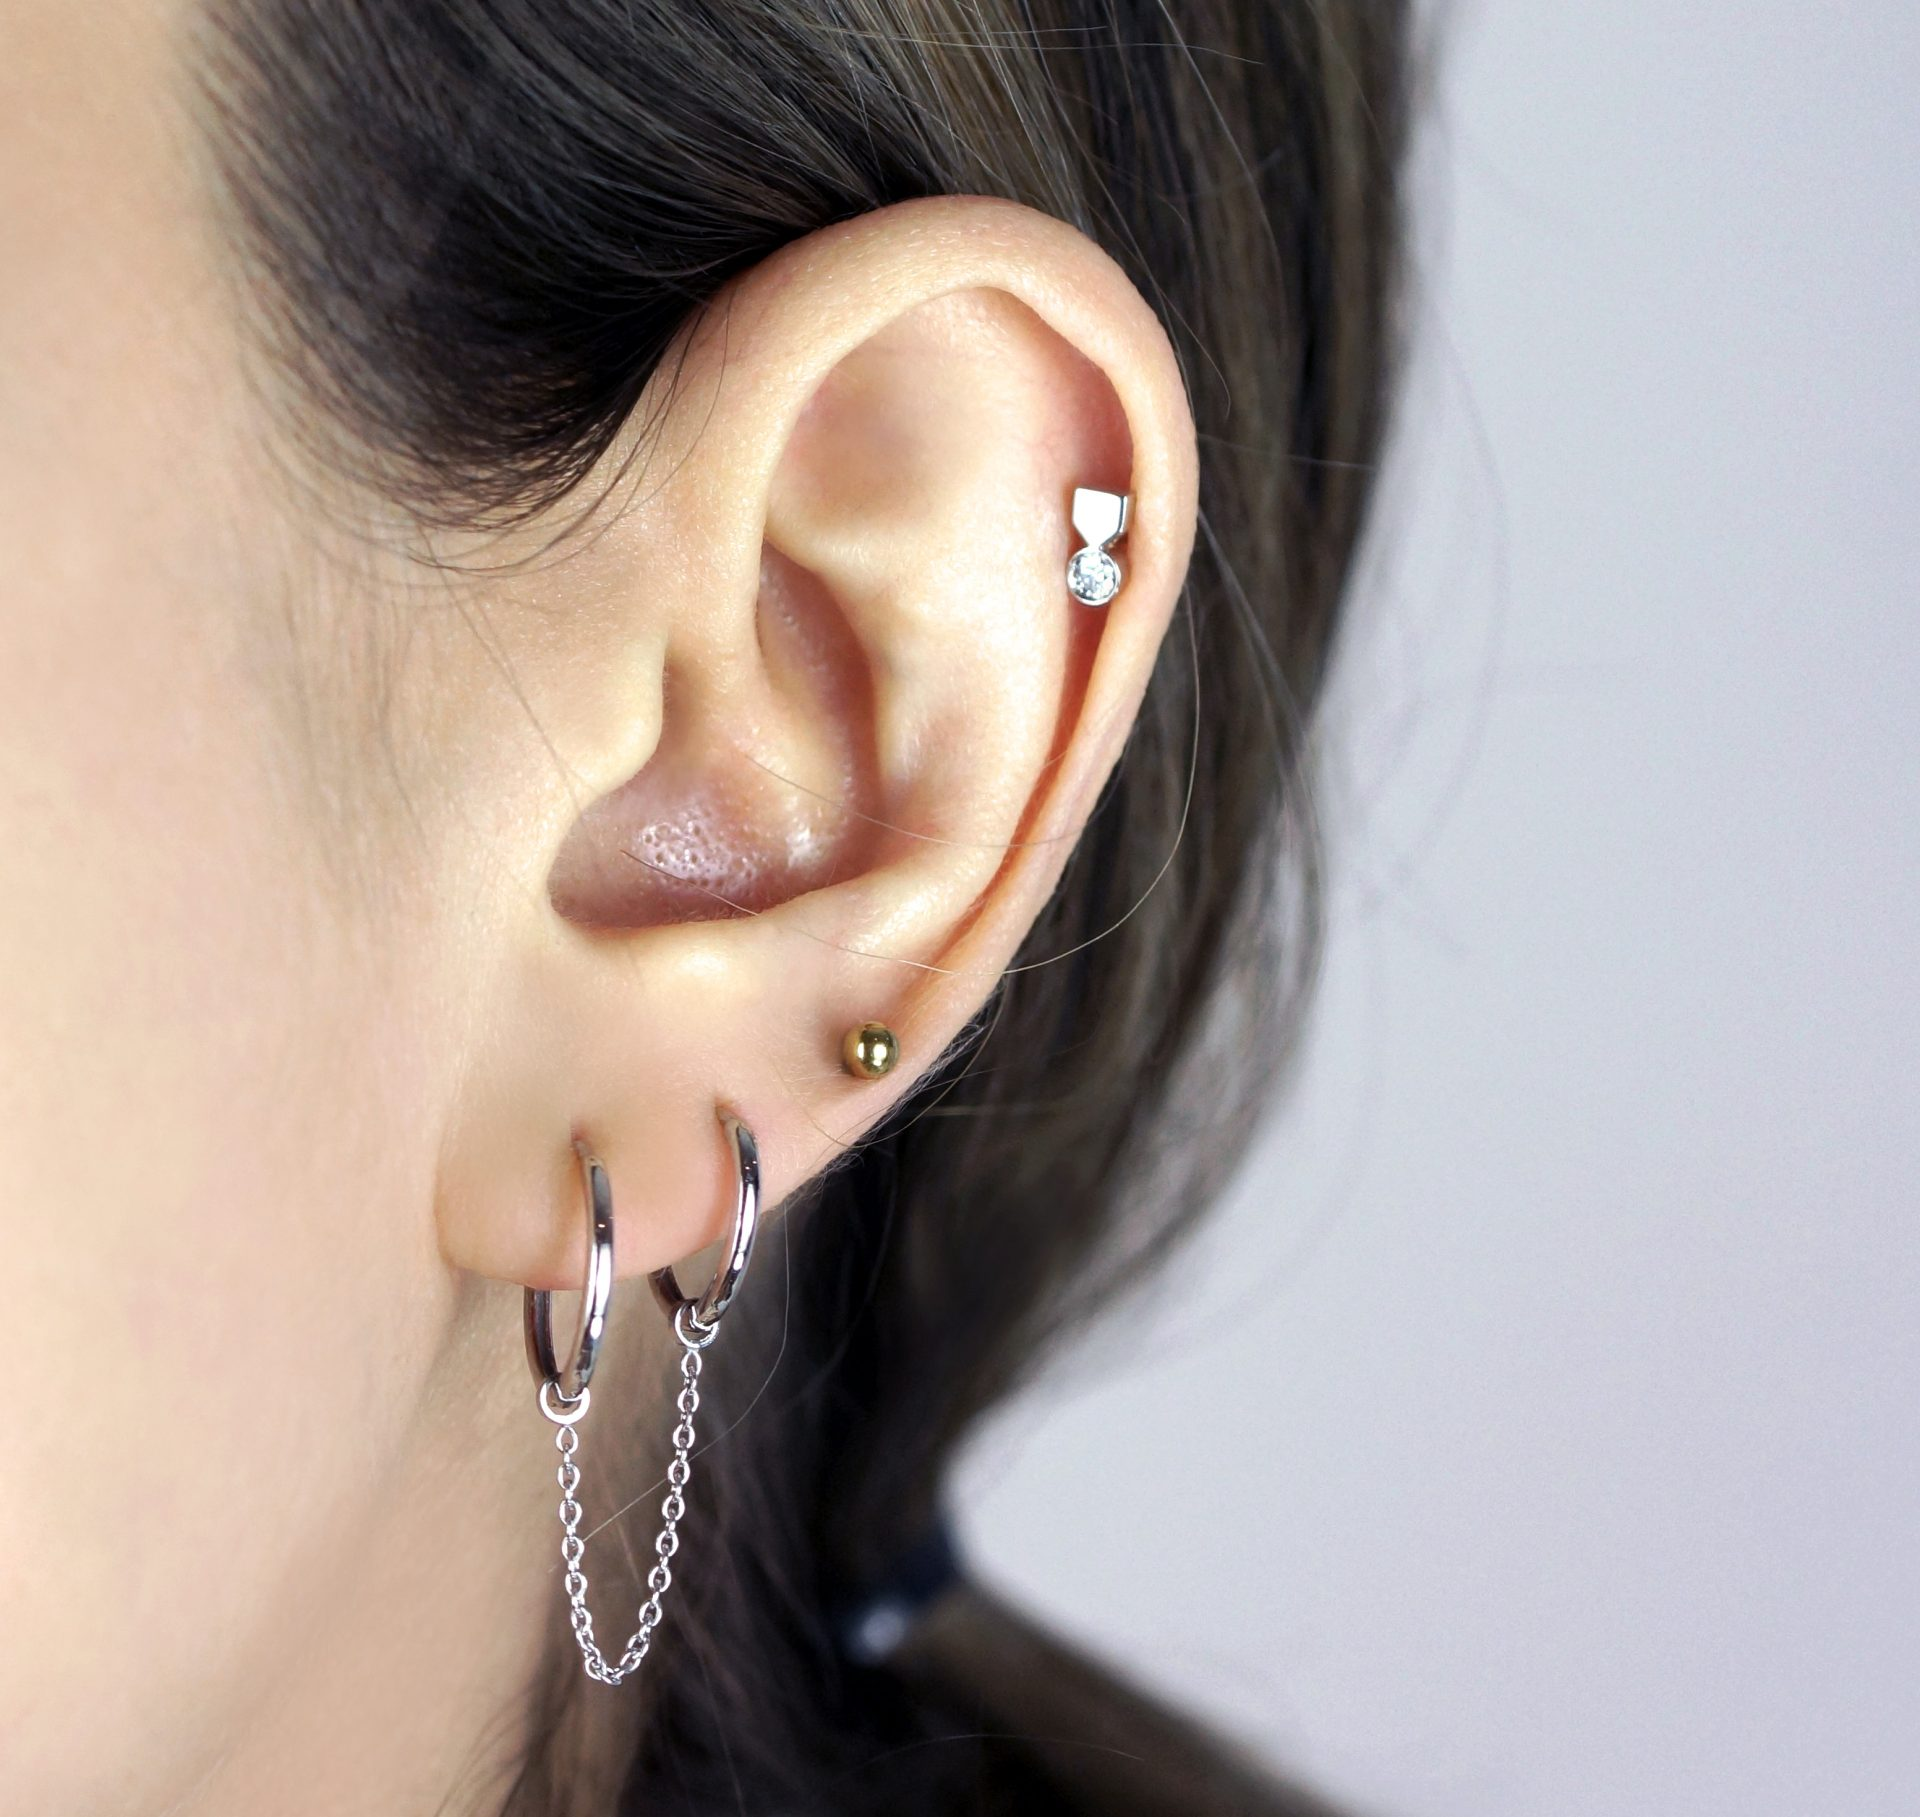 Luxury-Ear-Piercing-Jewellery-in-London-Lena-Cohen-Unique-Designs-Created-Crafted-Master-Goldsmiths-Using-Natural-Stones-1-1